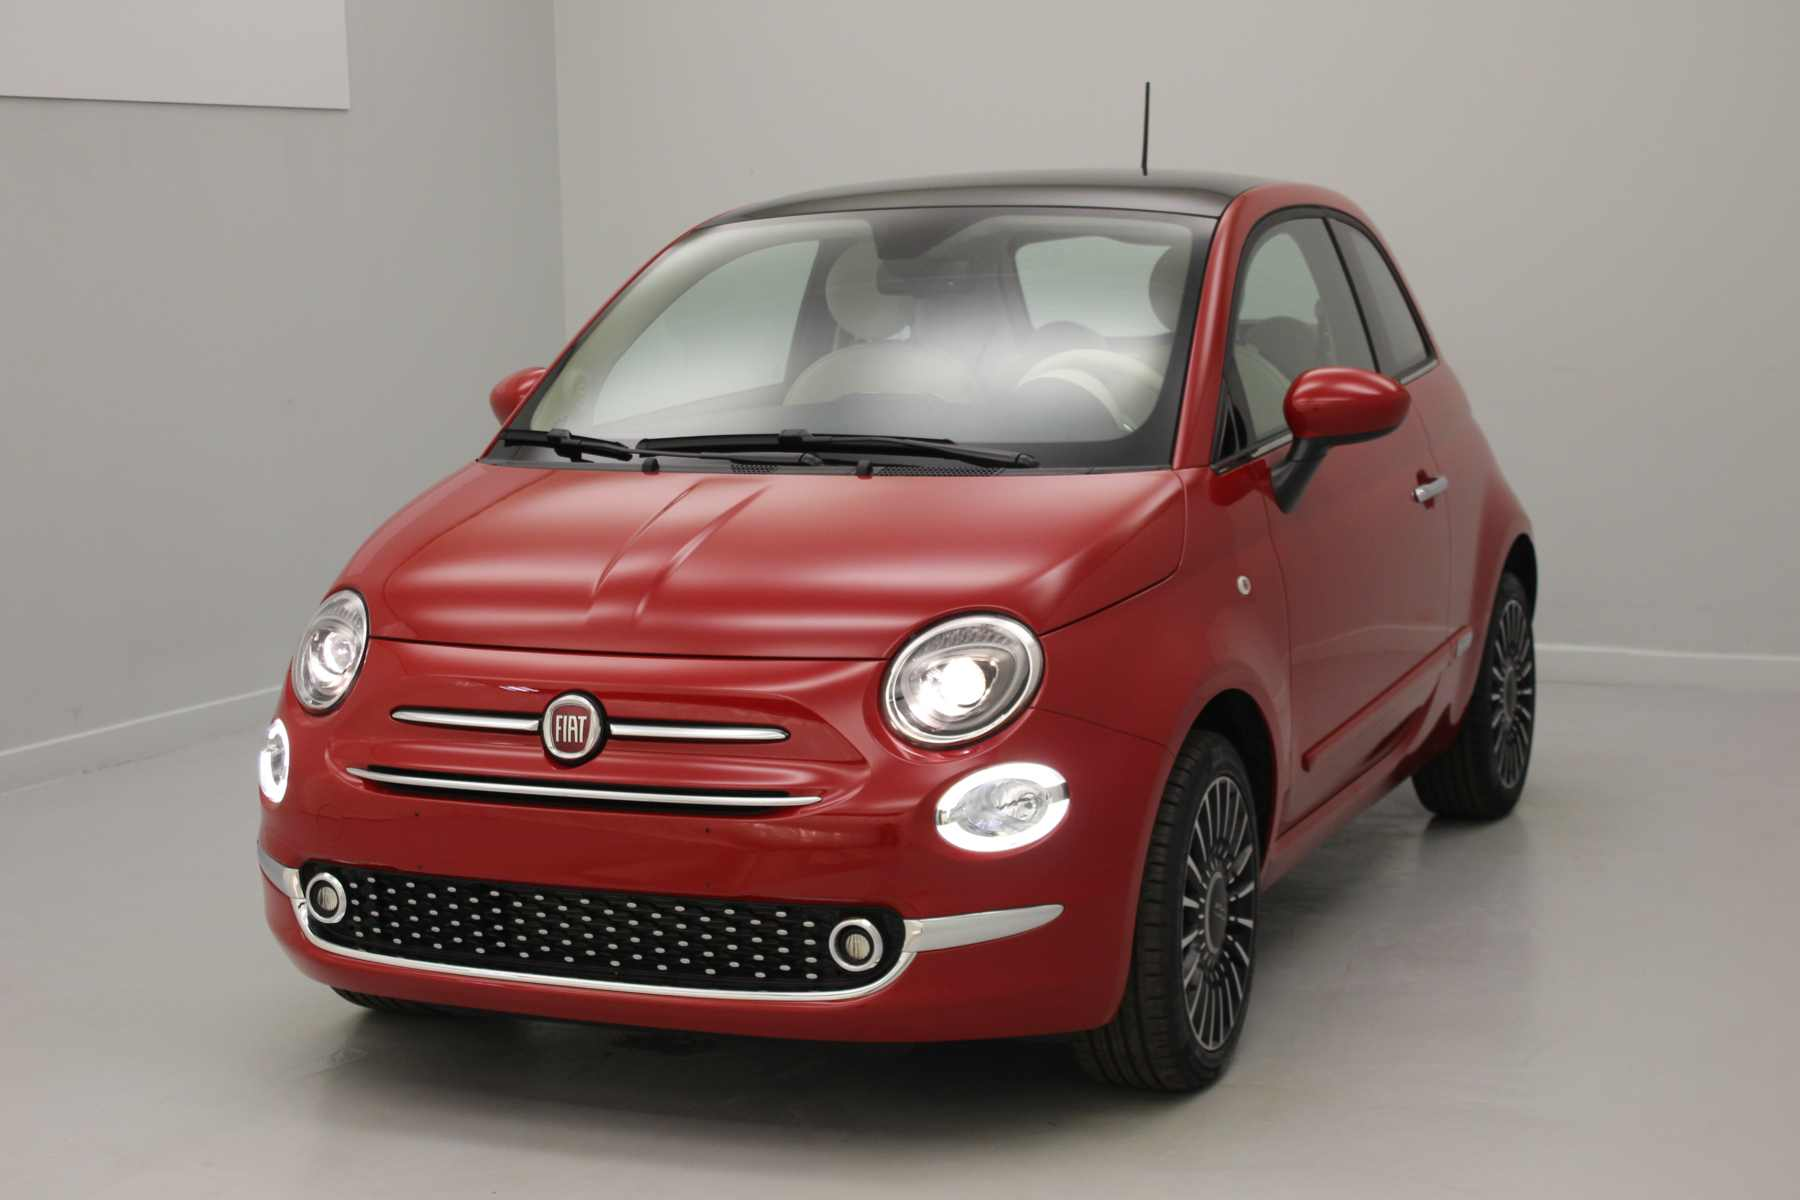 FIAT 500 1.2 69 ch Lounge Eco Pack Pasodoble Red + Climatisation automatique + Jantes 16'' New Club avec options